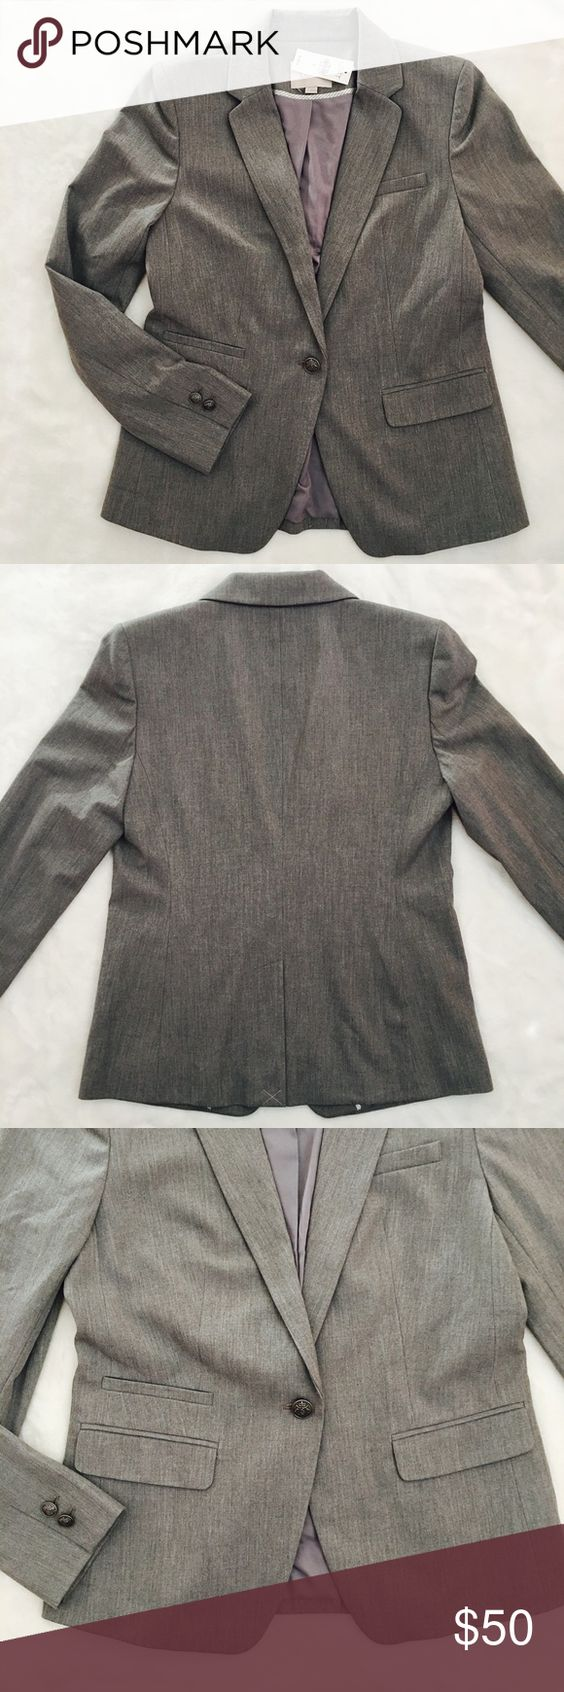 Loft Classic Blazer Grey ESSENTIAL NWT Loft blazer in grey. Gorgeous heathered grey, fully lined, notched lapels, silver crest buttons, 4 pocket styling. One breast pocket 3 front pockets. 62% polyester 33% rayon 5% spandex.   Fits 4-6 Bust 34-35 Waist 26.5-27.5 Hip 36-37 Sleeve 30.5-30.75 LOFT Jackets & Coats Blazers